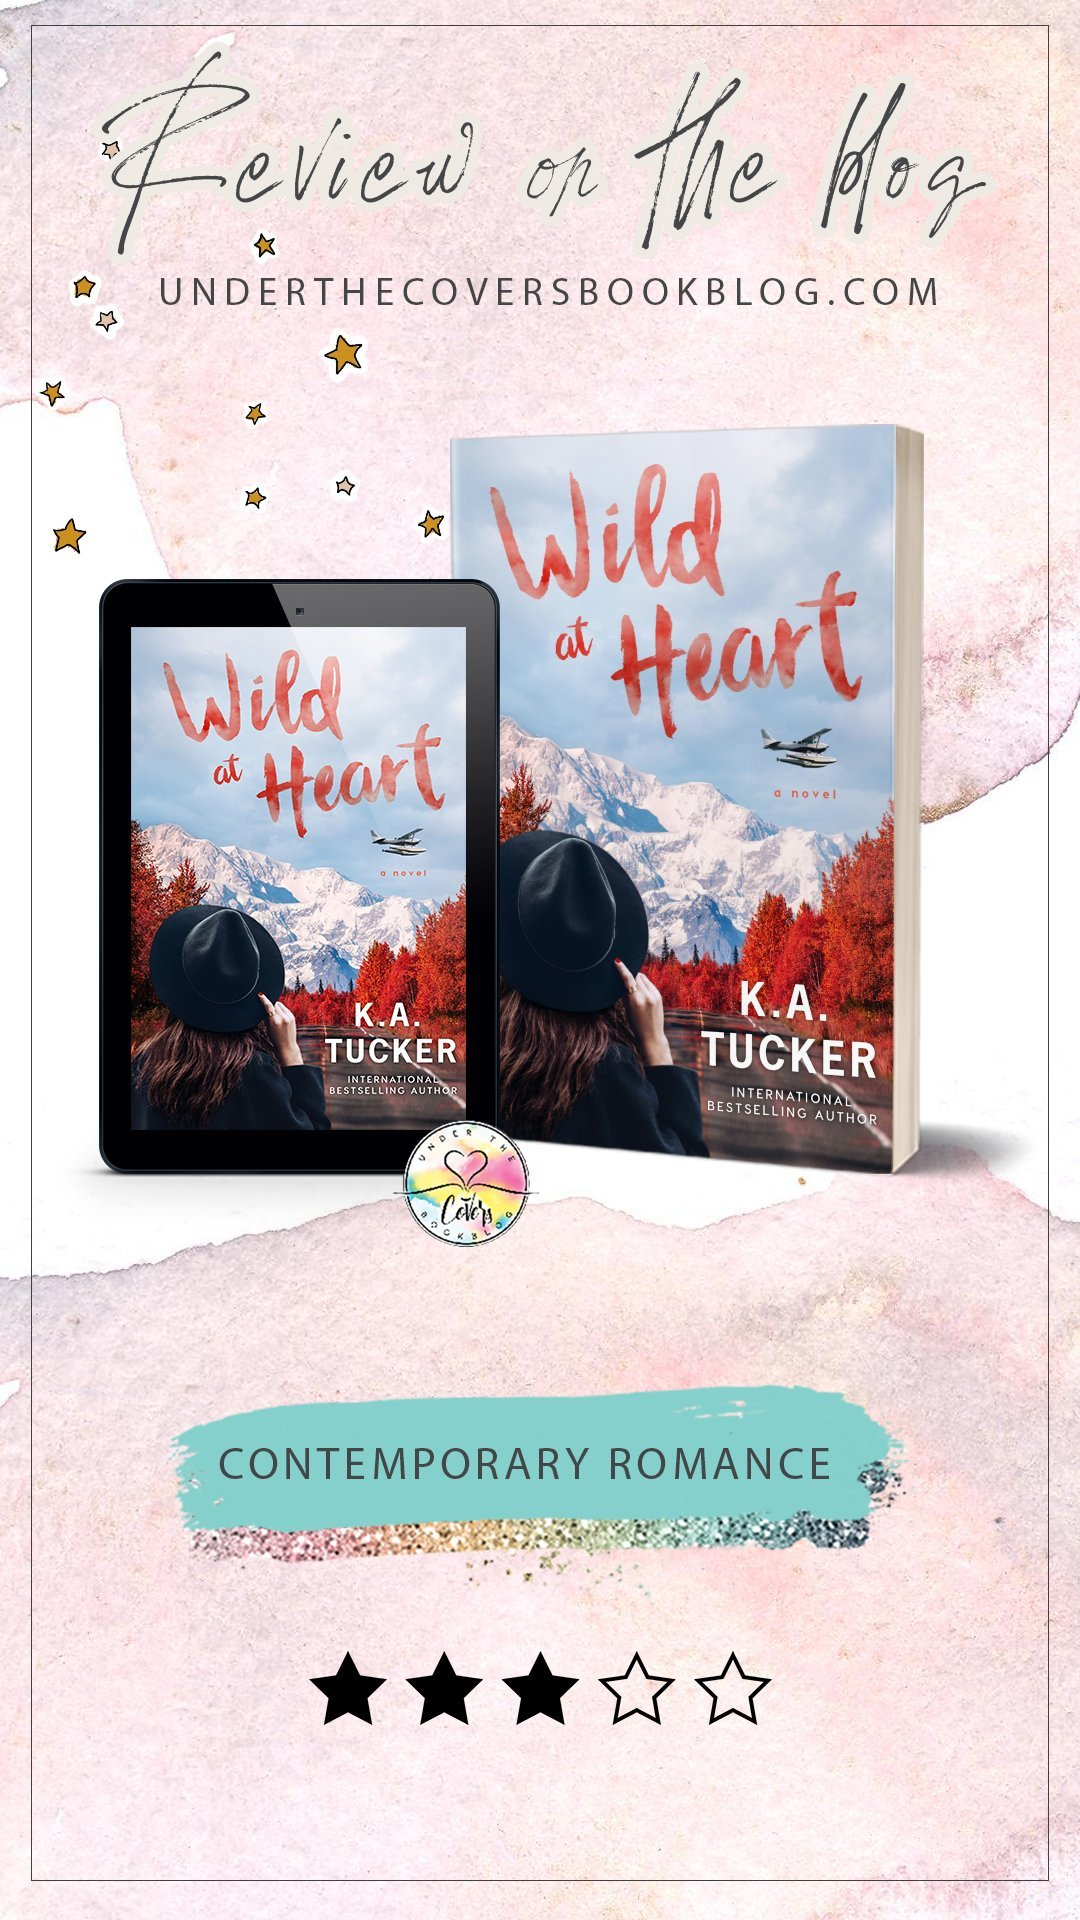 ARC Review: Wild at Heart by K.A. Tucker